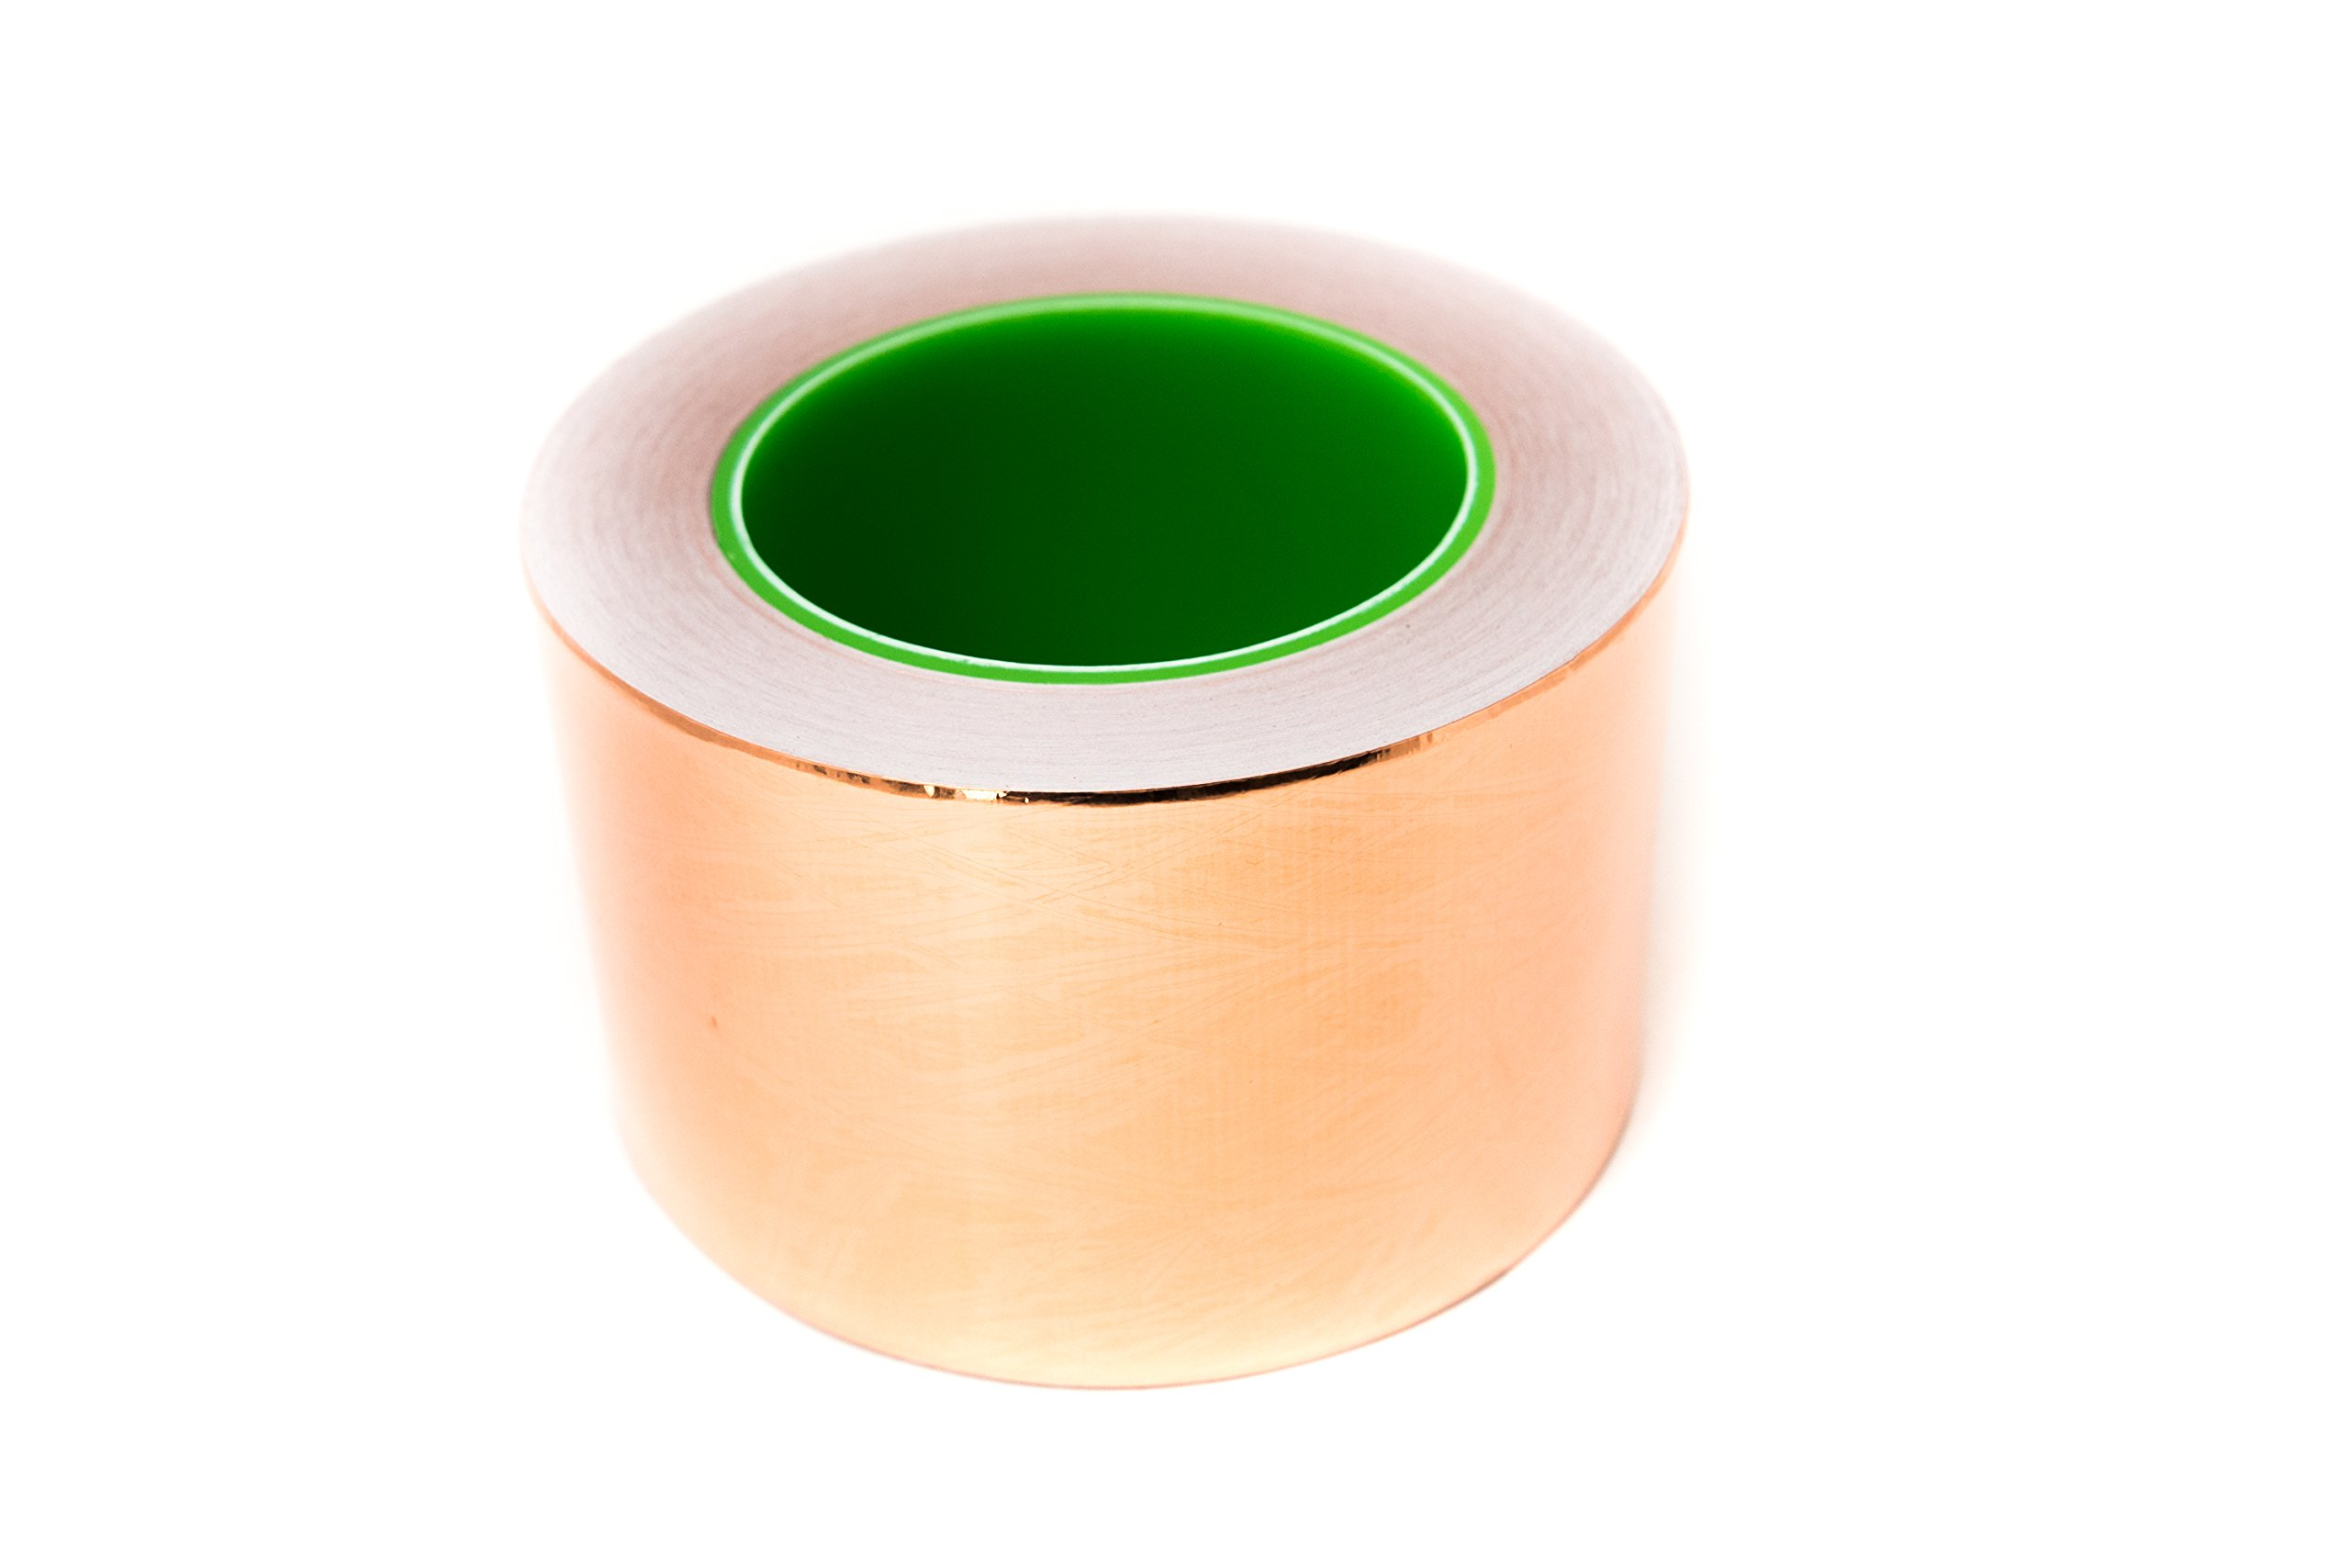 Bertech Copper Conductive Tape, 4'' Wide x 36 Yards Long, 2.75 mil Thick on a 3'' Core - For Slug Repellent, EMI Shielding, Electrical Repairs